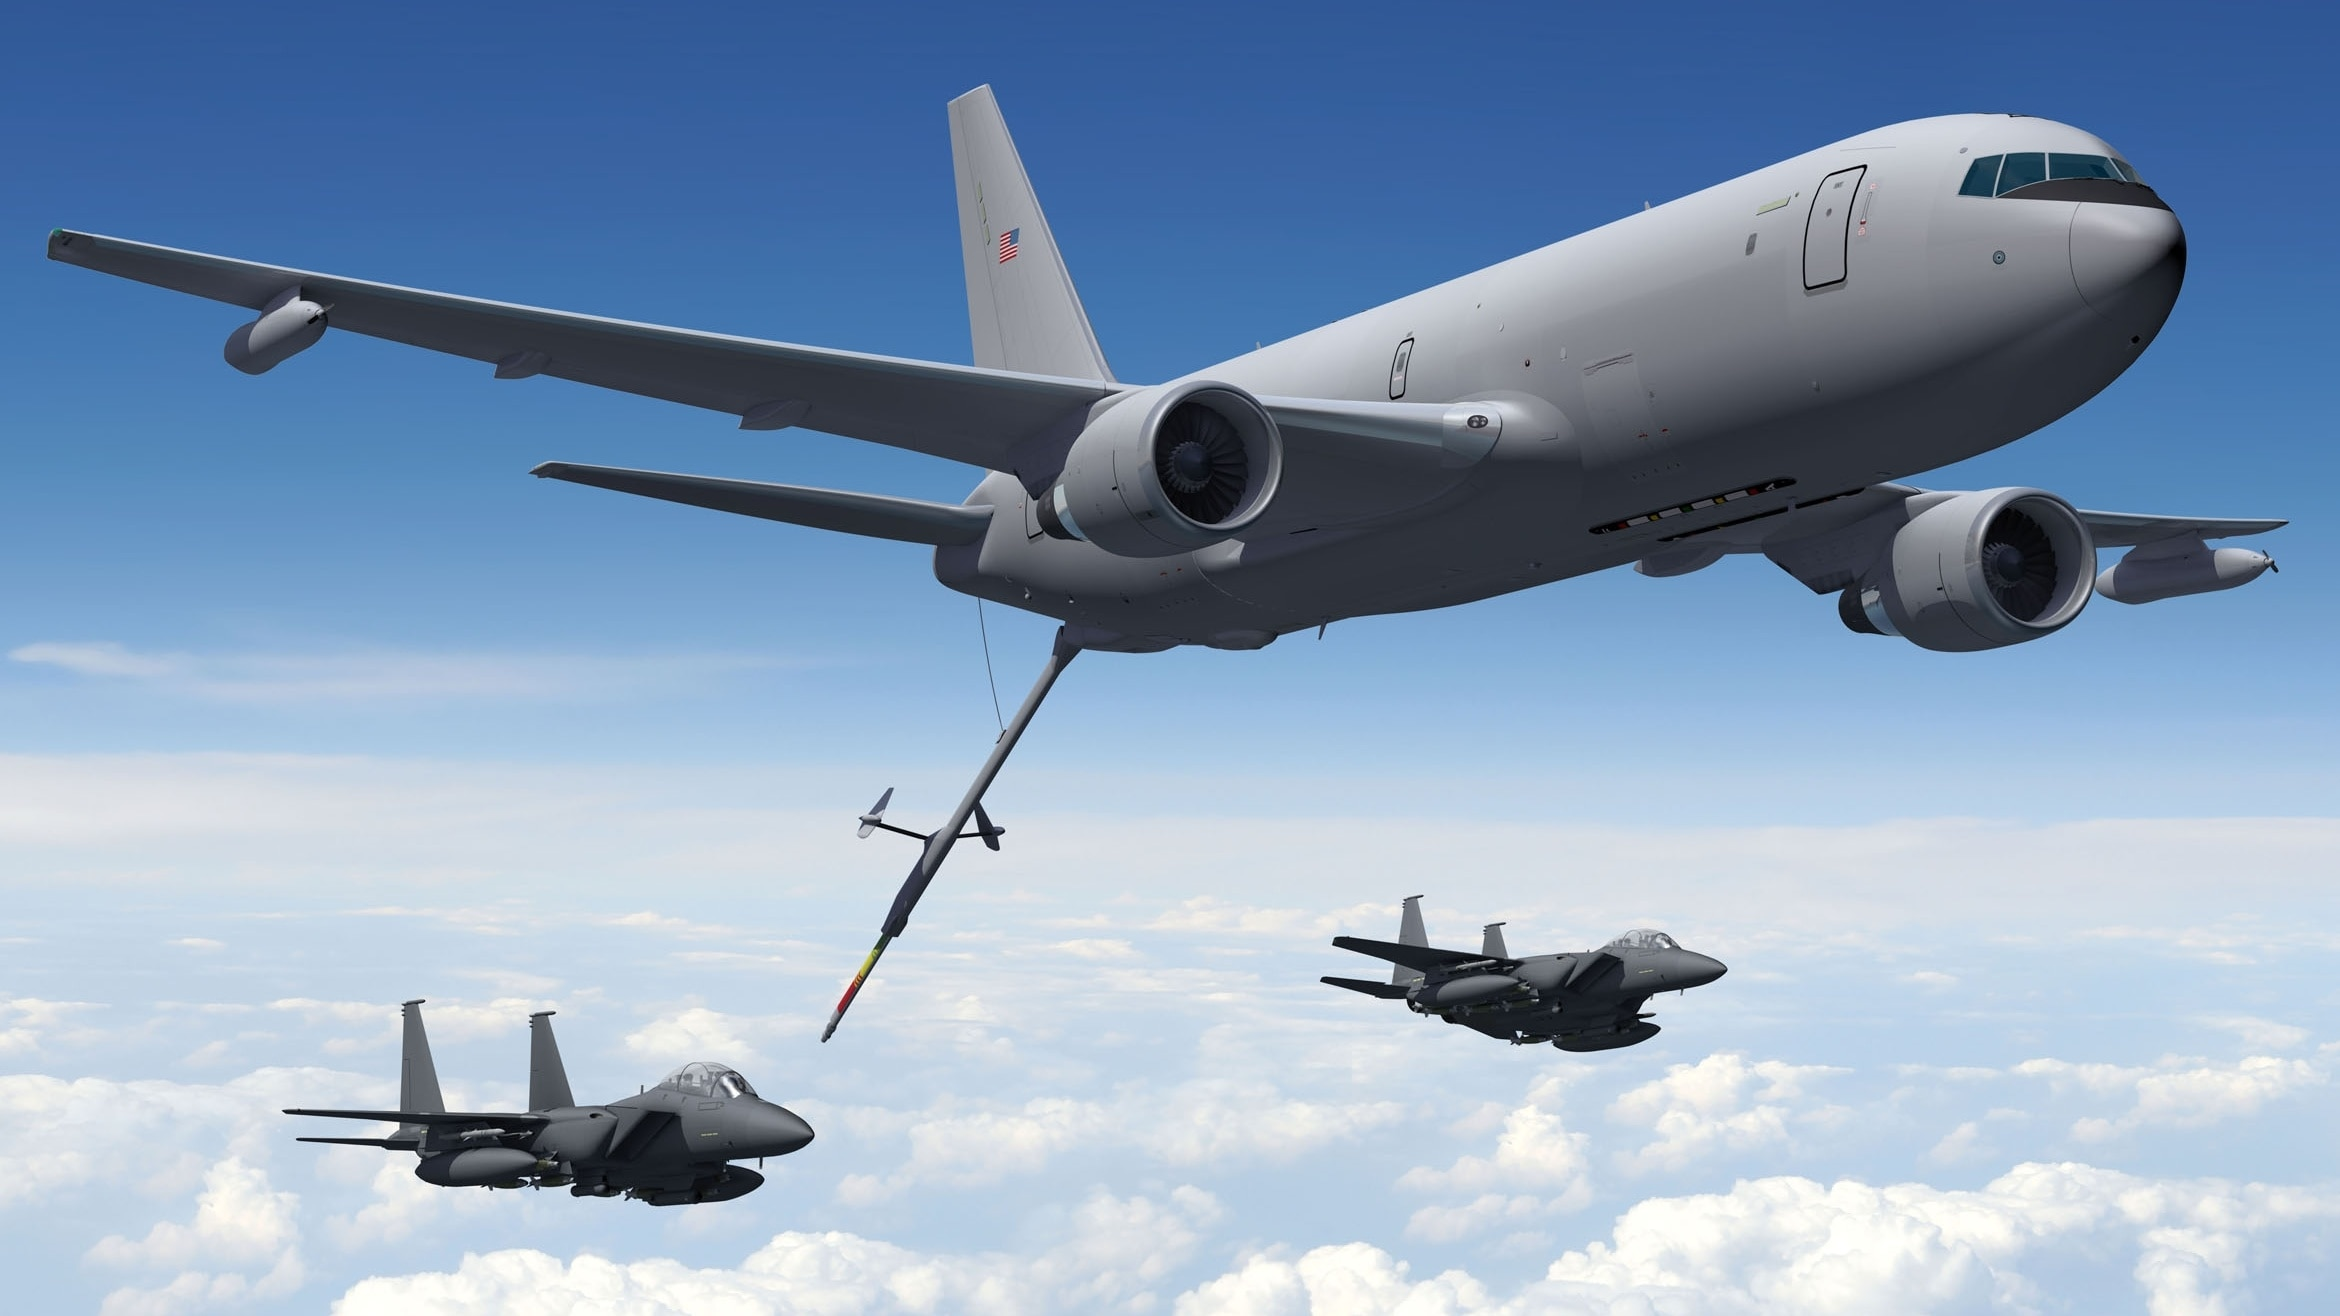 US Air Force predicts first KC-46 delivery in spring 2018, likely not this year